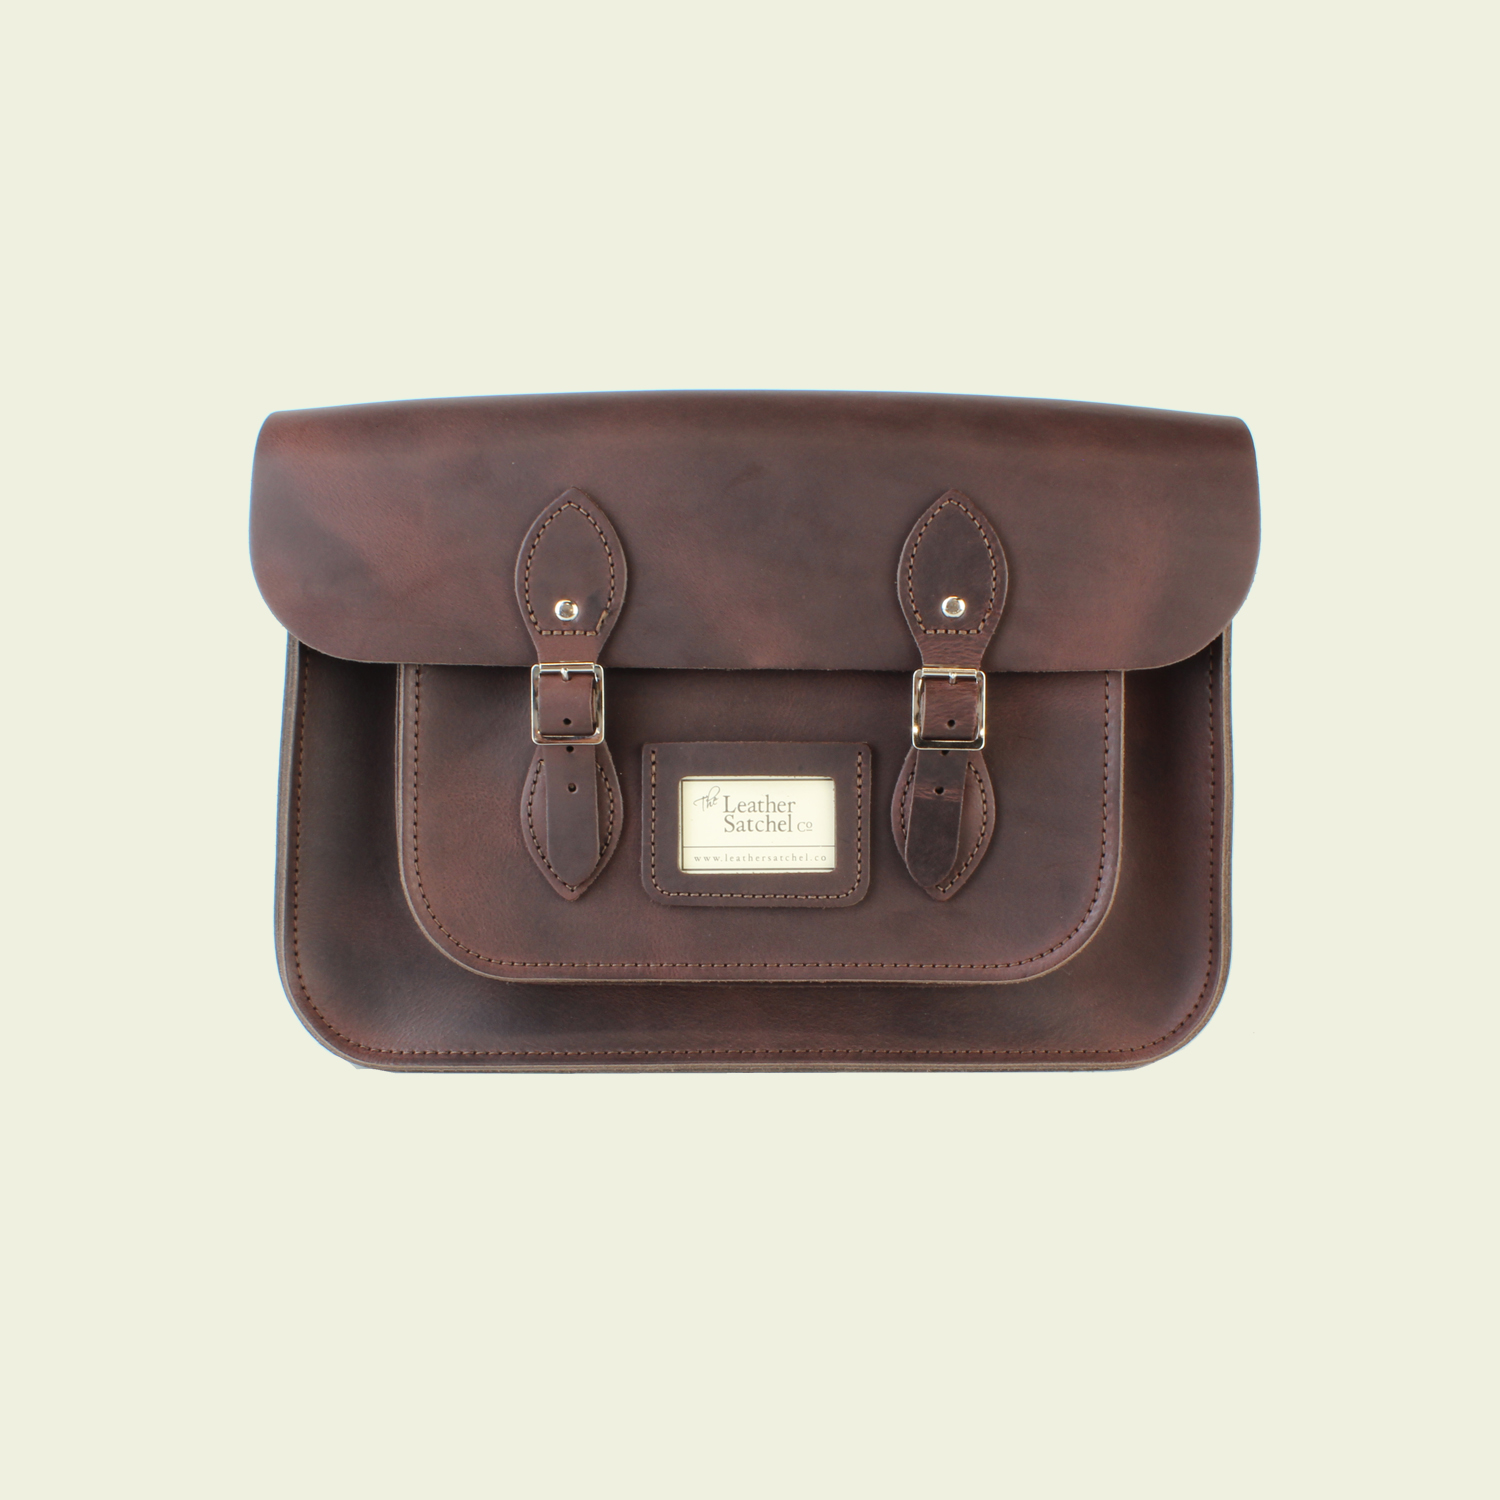 Discover the original satchel maker